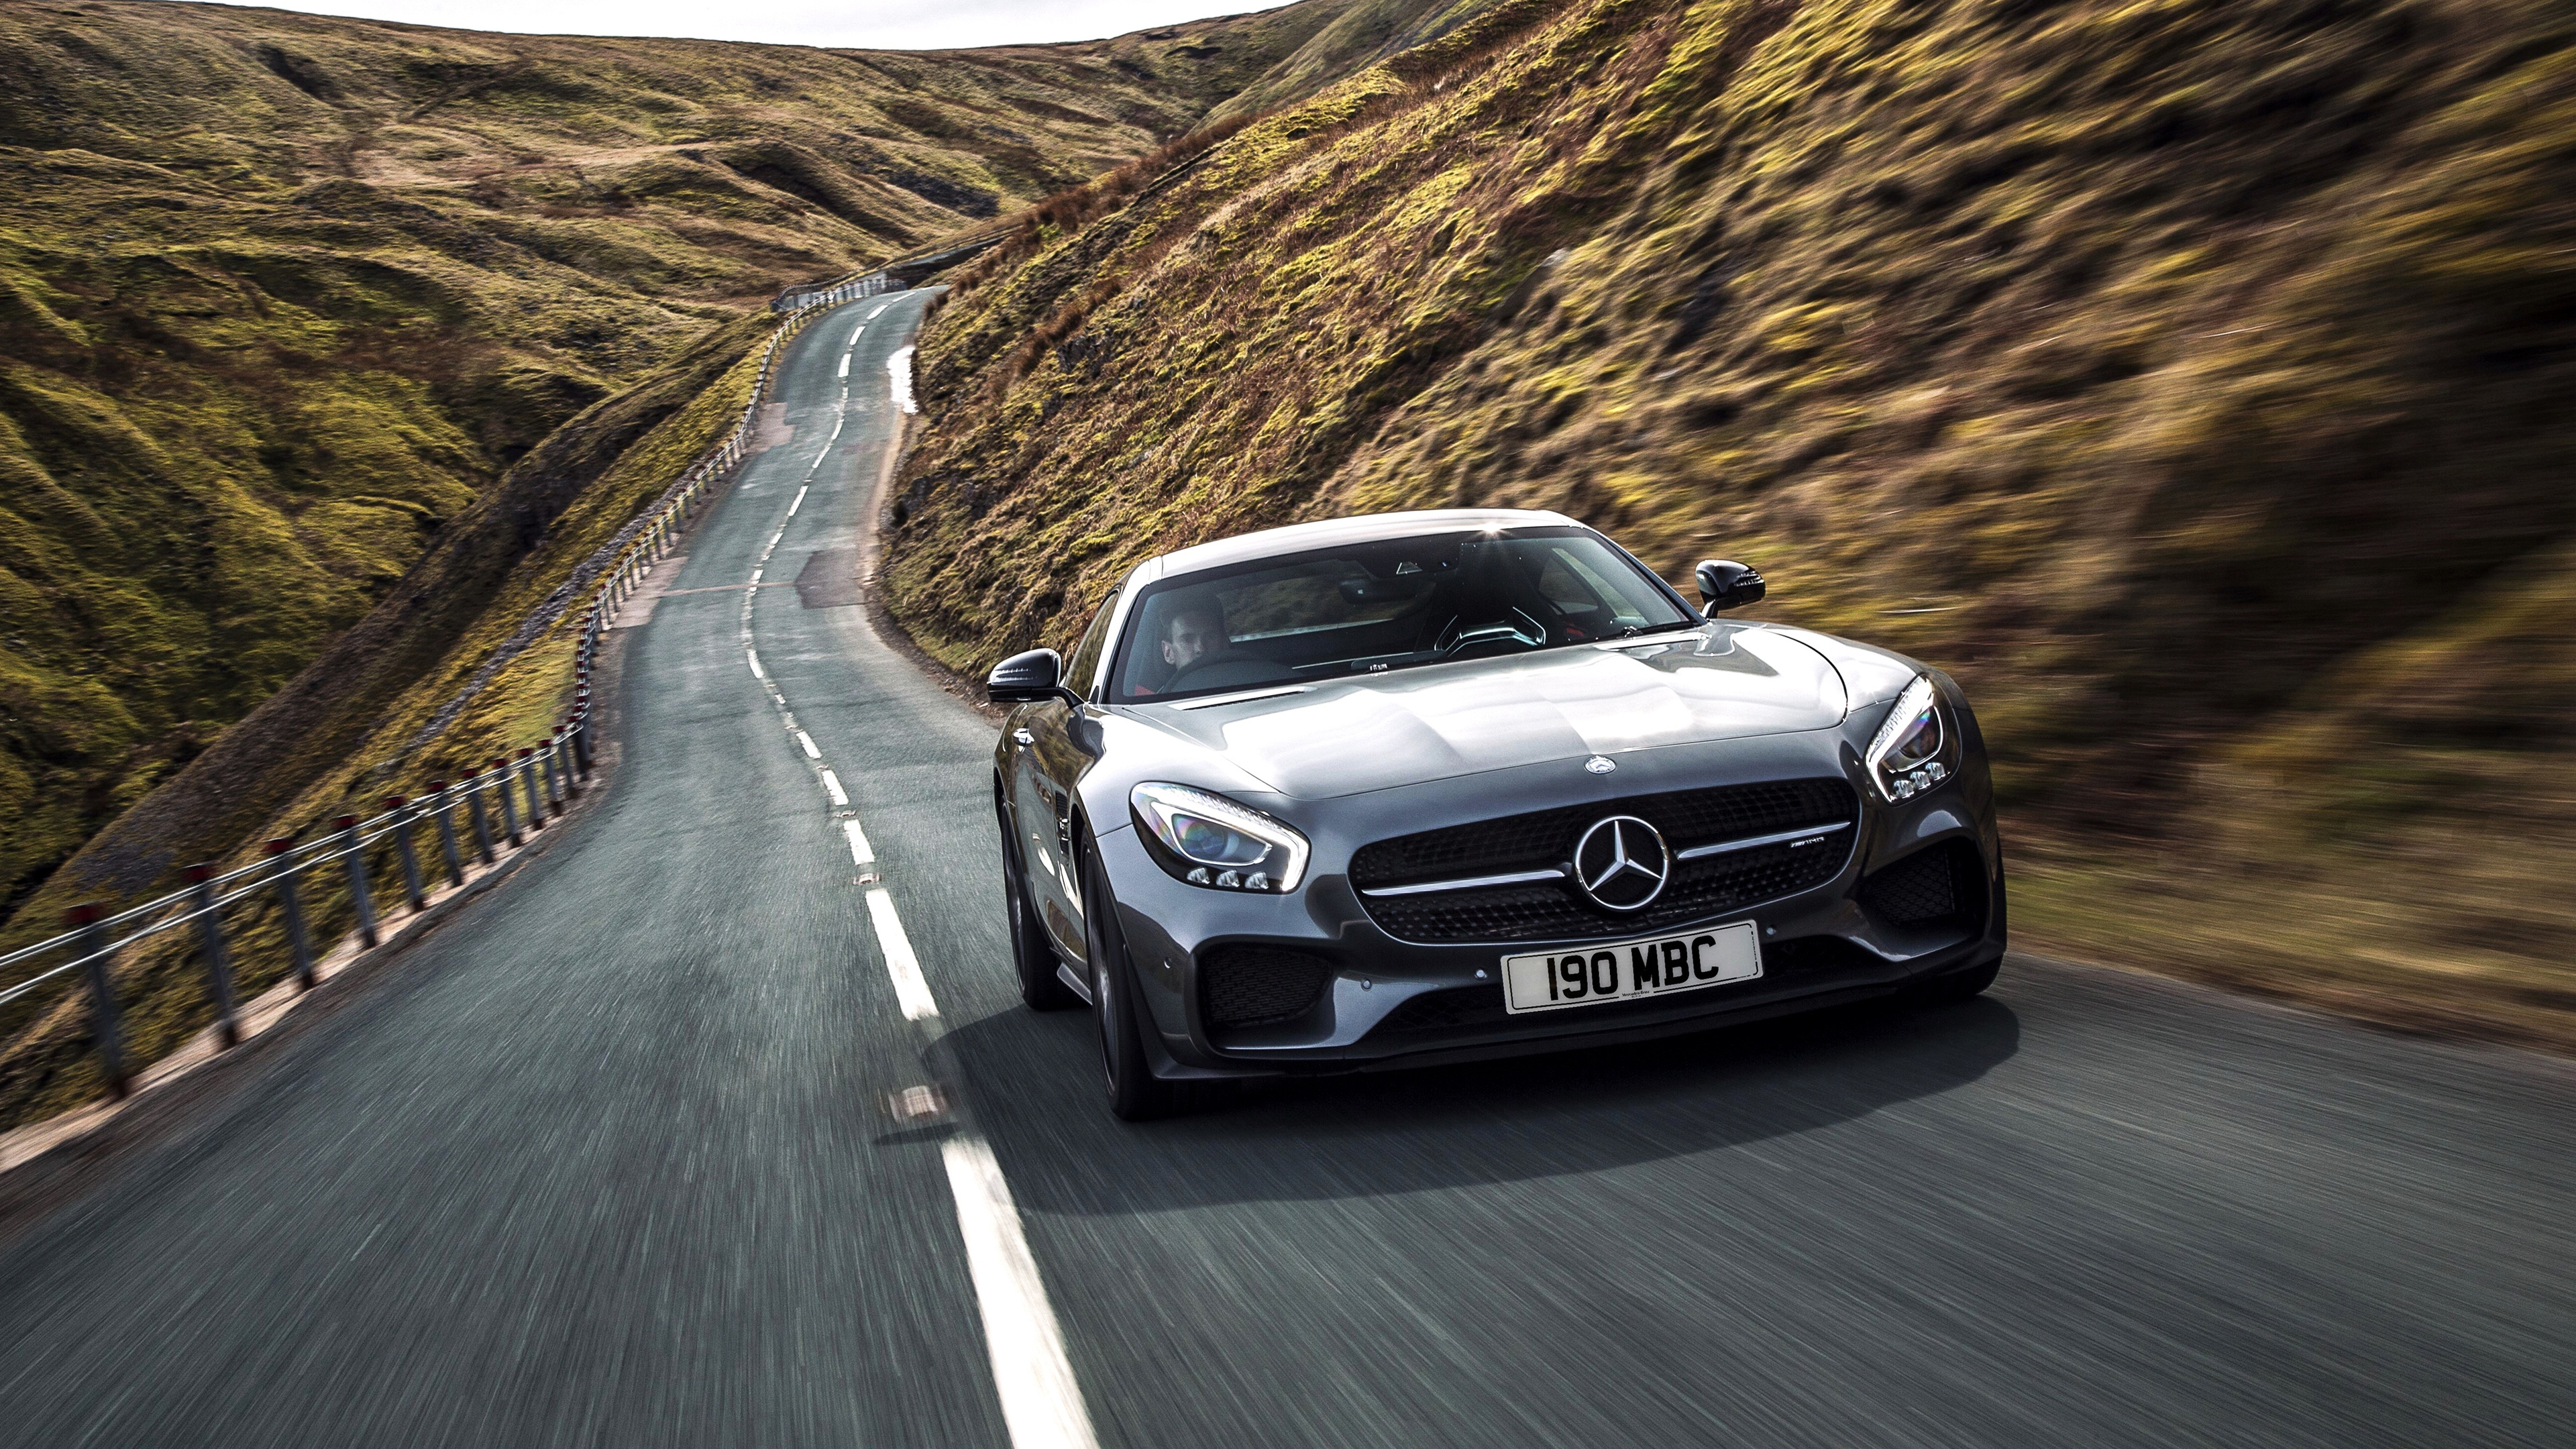 2015 Mercedes Amg Gt S Uk Spec Wallpaper Hd Car